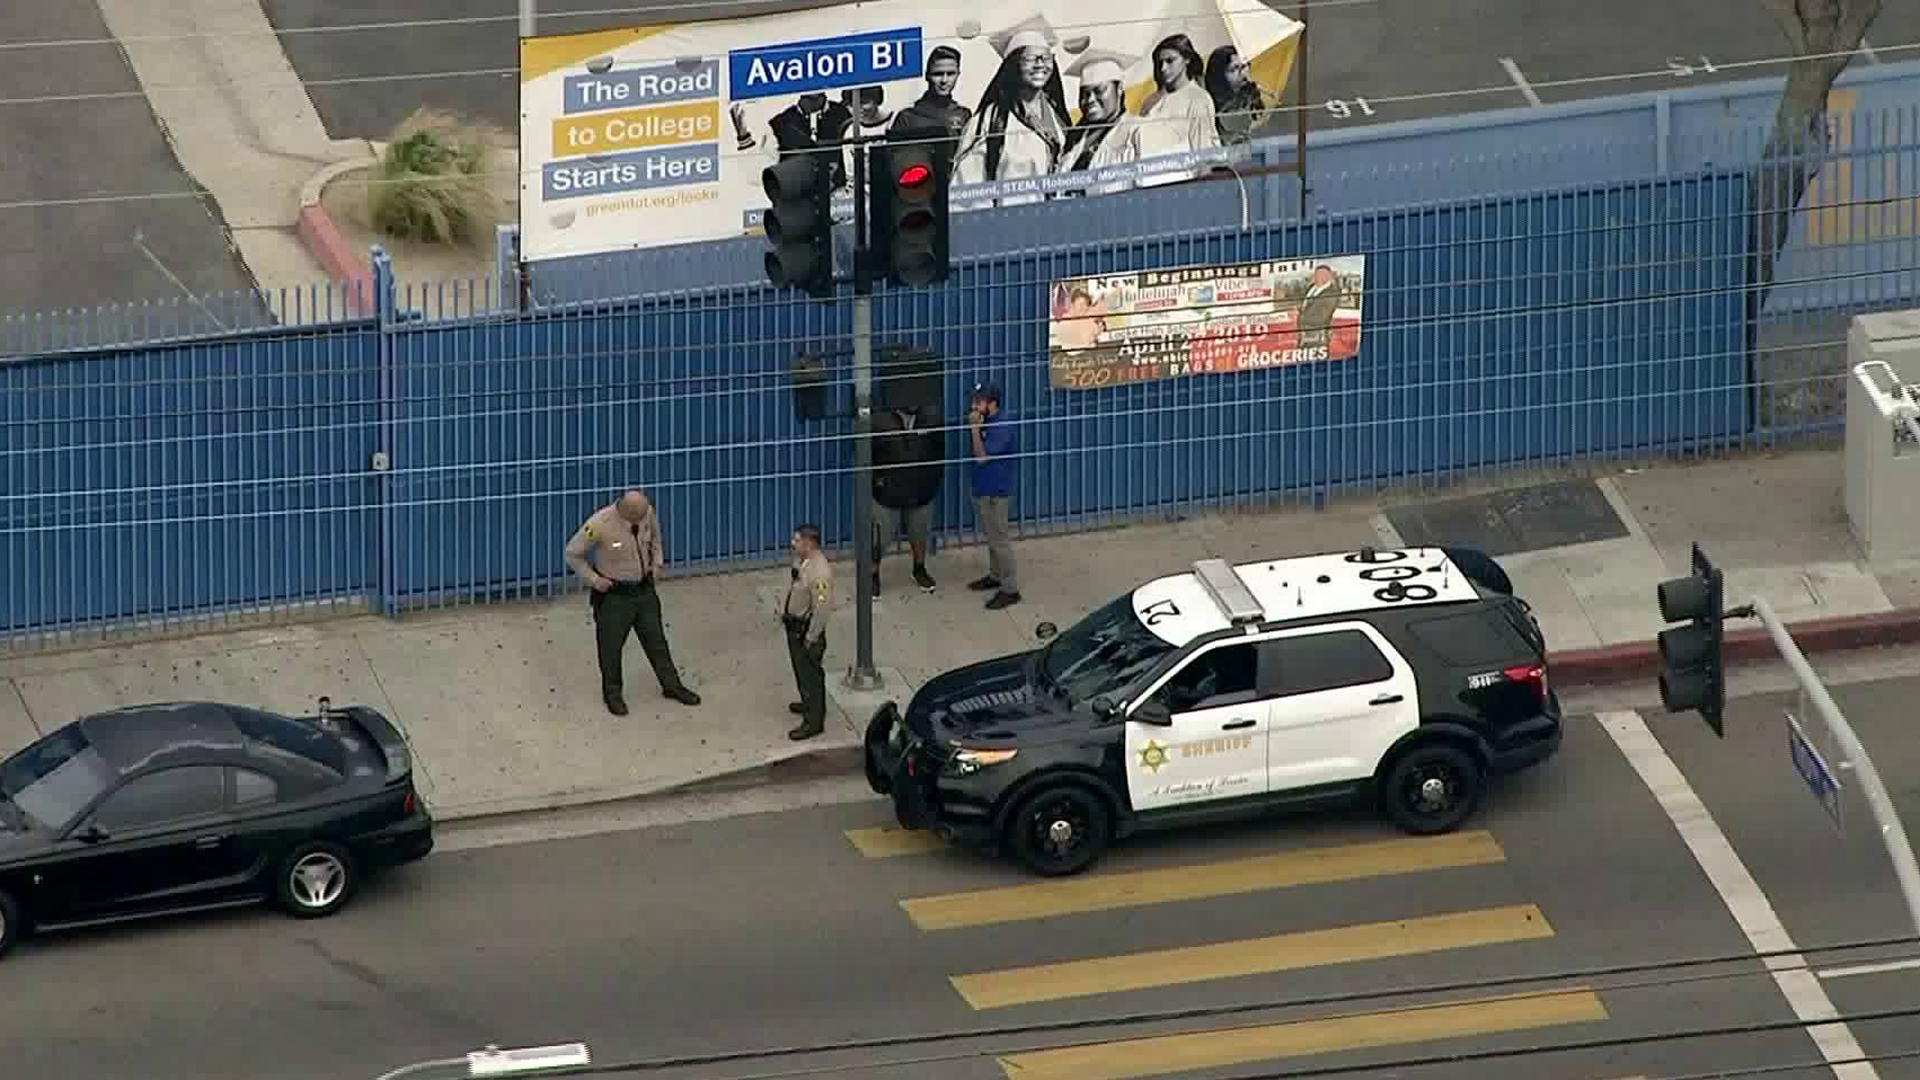 Police investigate a reported bomb threat at Alain LeRoy Locke College Preparatory Academy on May 3, 2019. (Credit: KTLA)